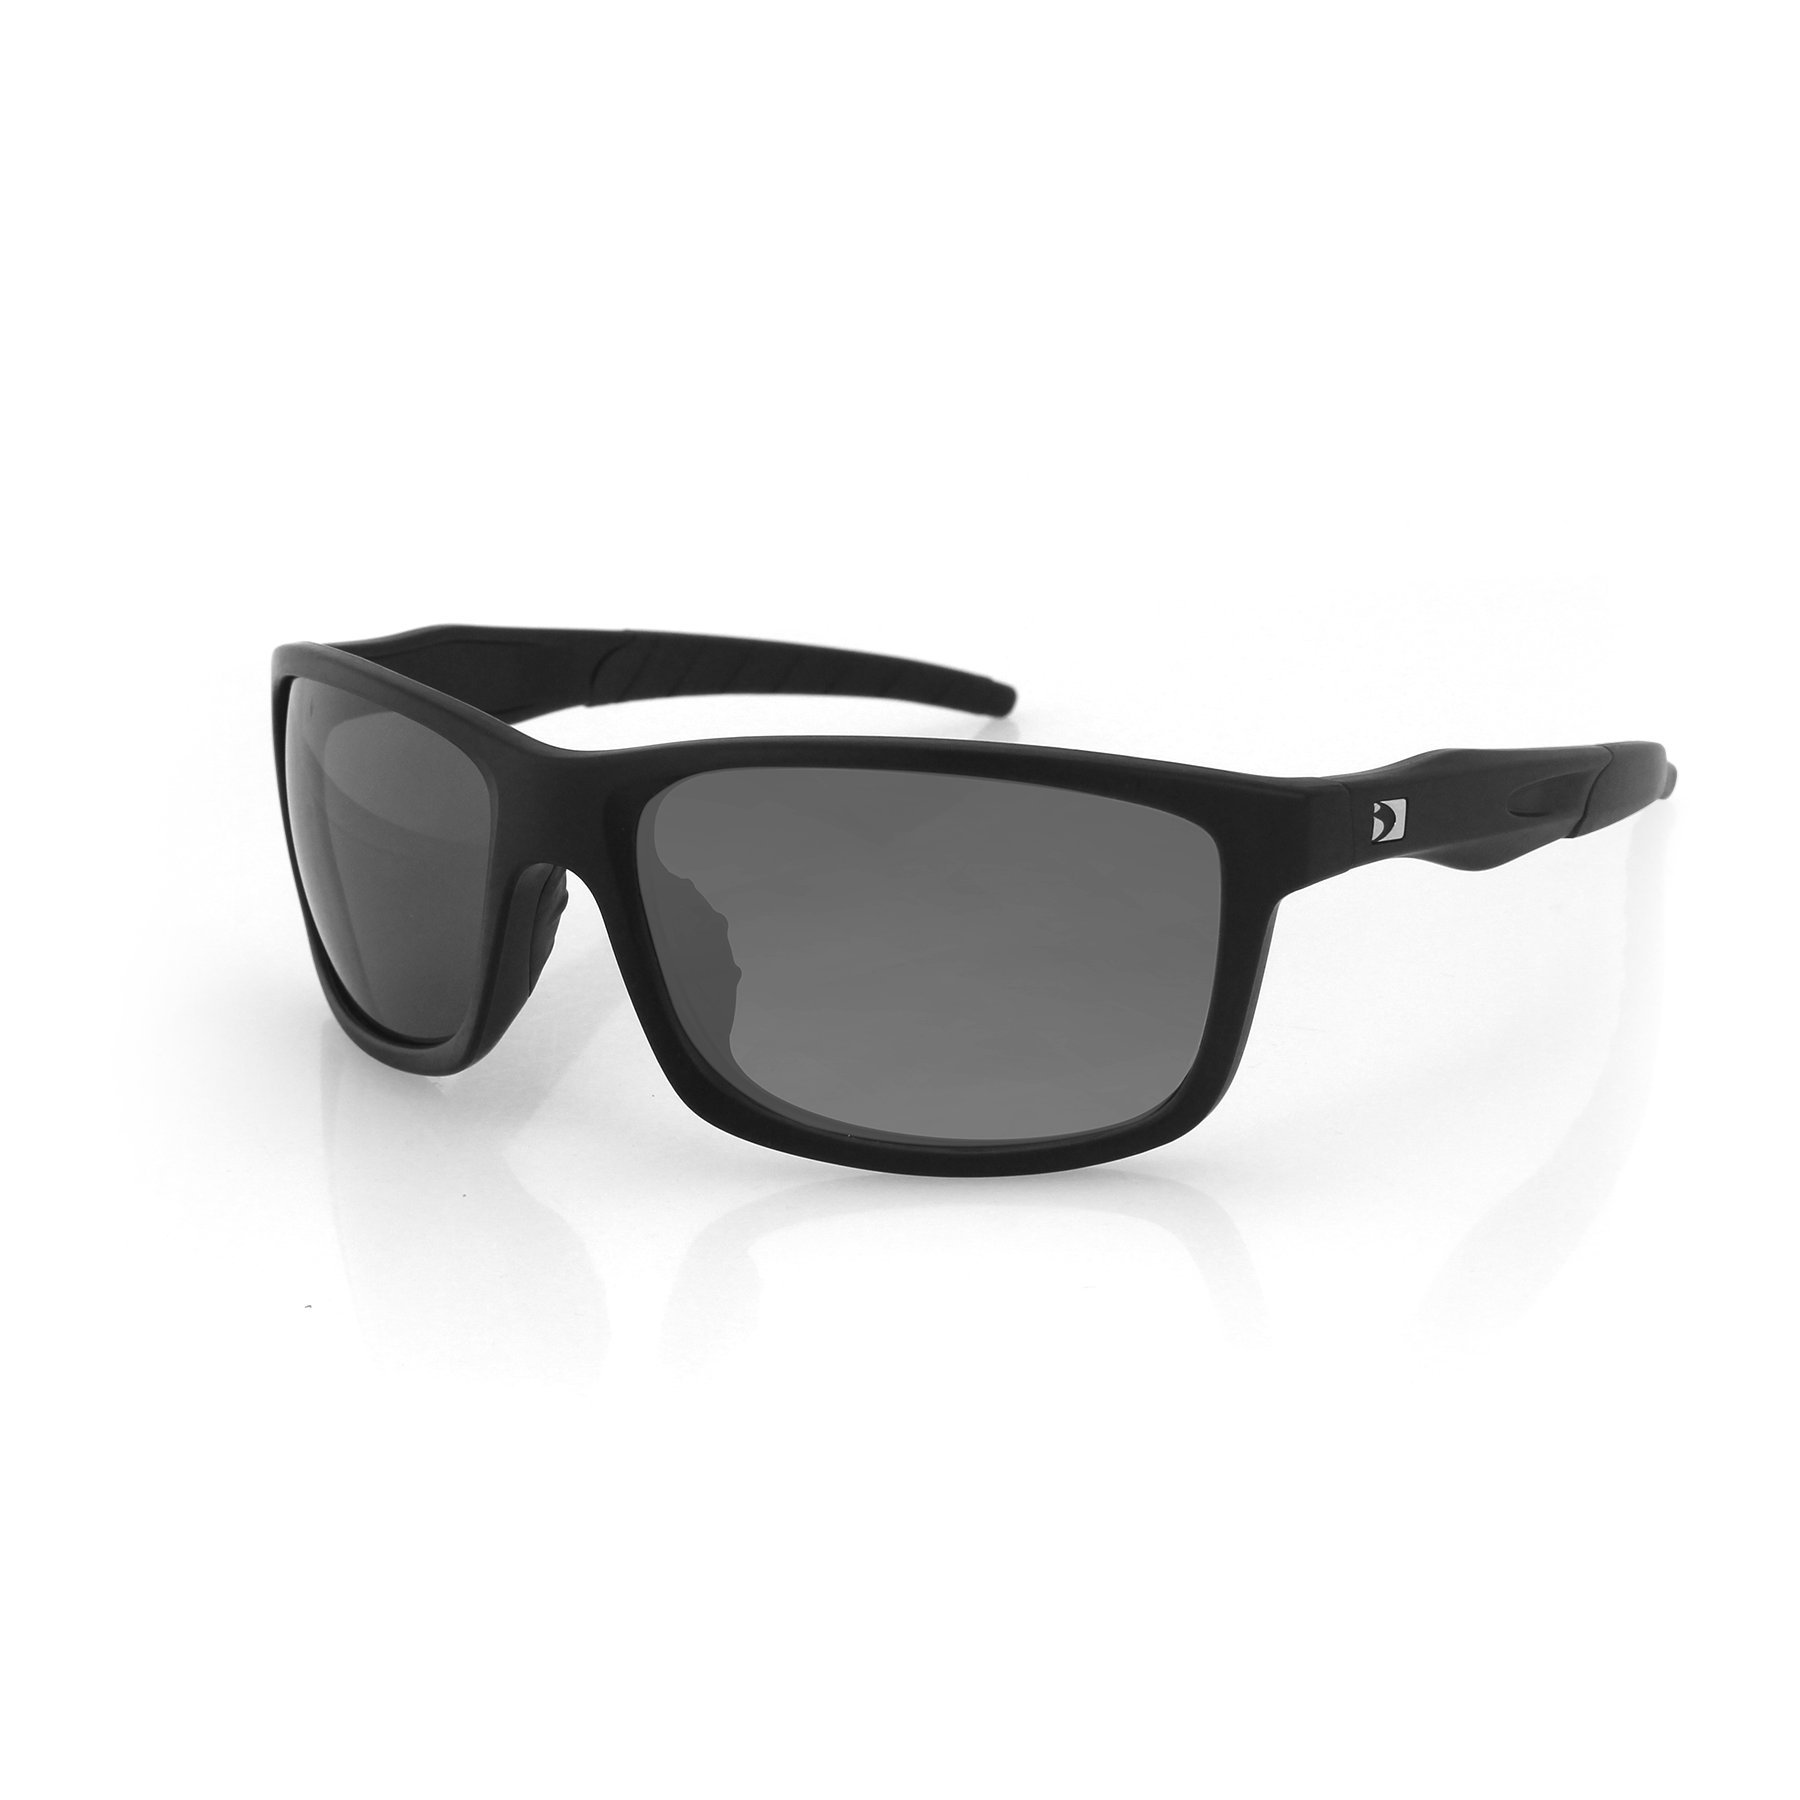 Bobster Unisex-Adult Virtue Sunglass, Matte Blk, Anti-fog Smoked,Hydrophobic/oeliophobic coating (,) by Bobster